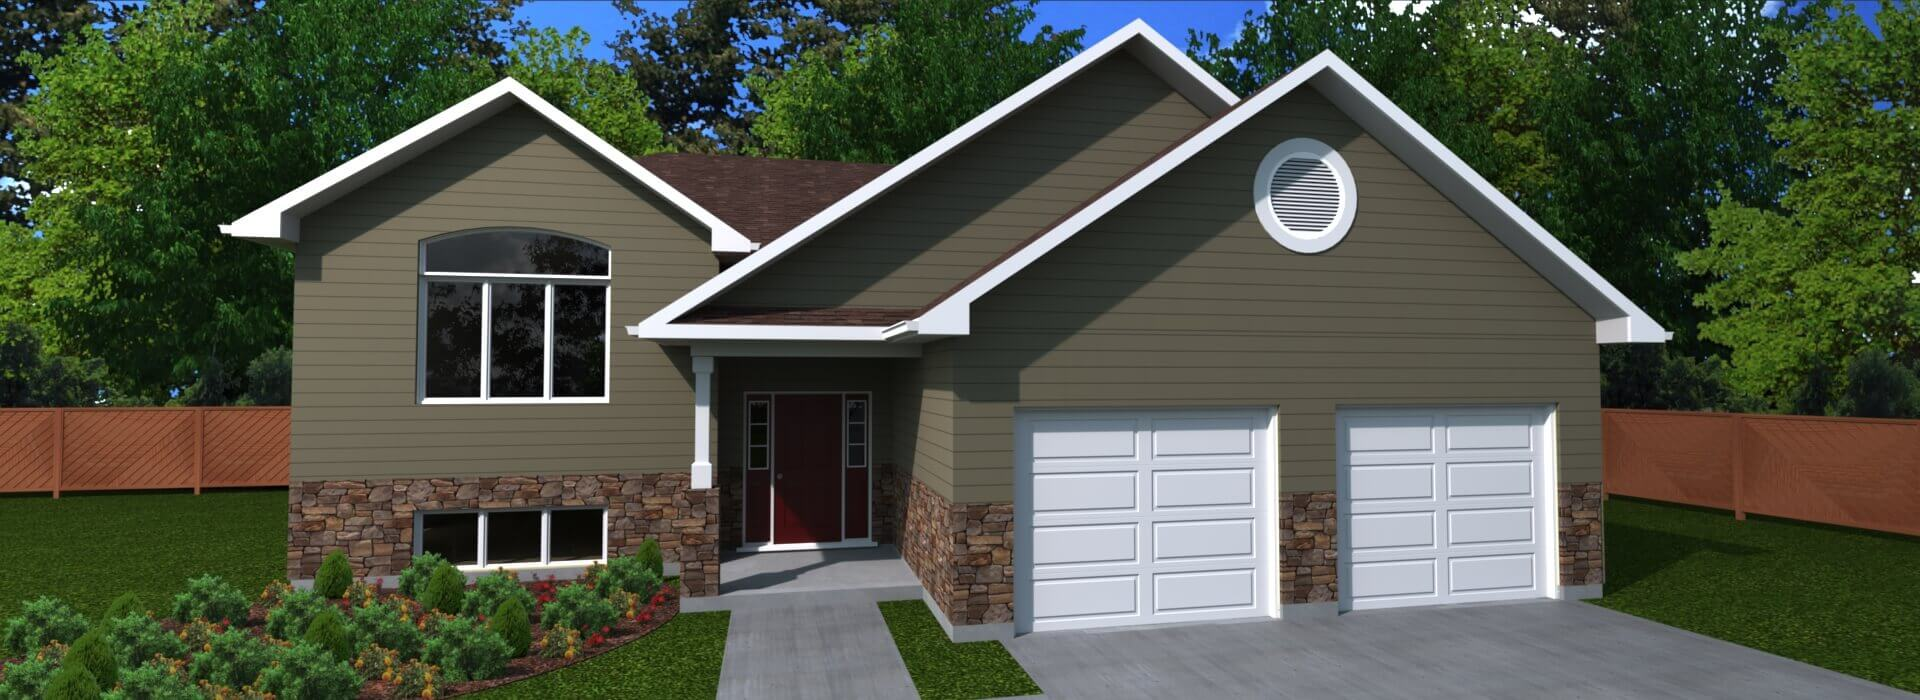 1608 sq.ft. timber mart house 3 bed 2 bath exterior render